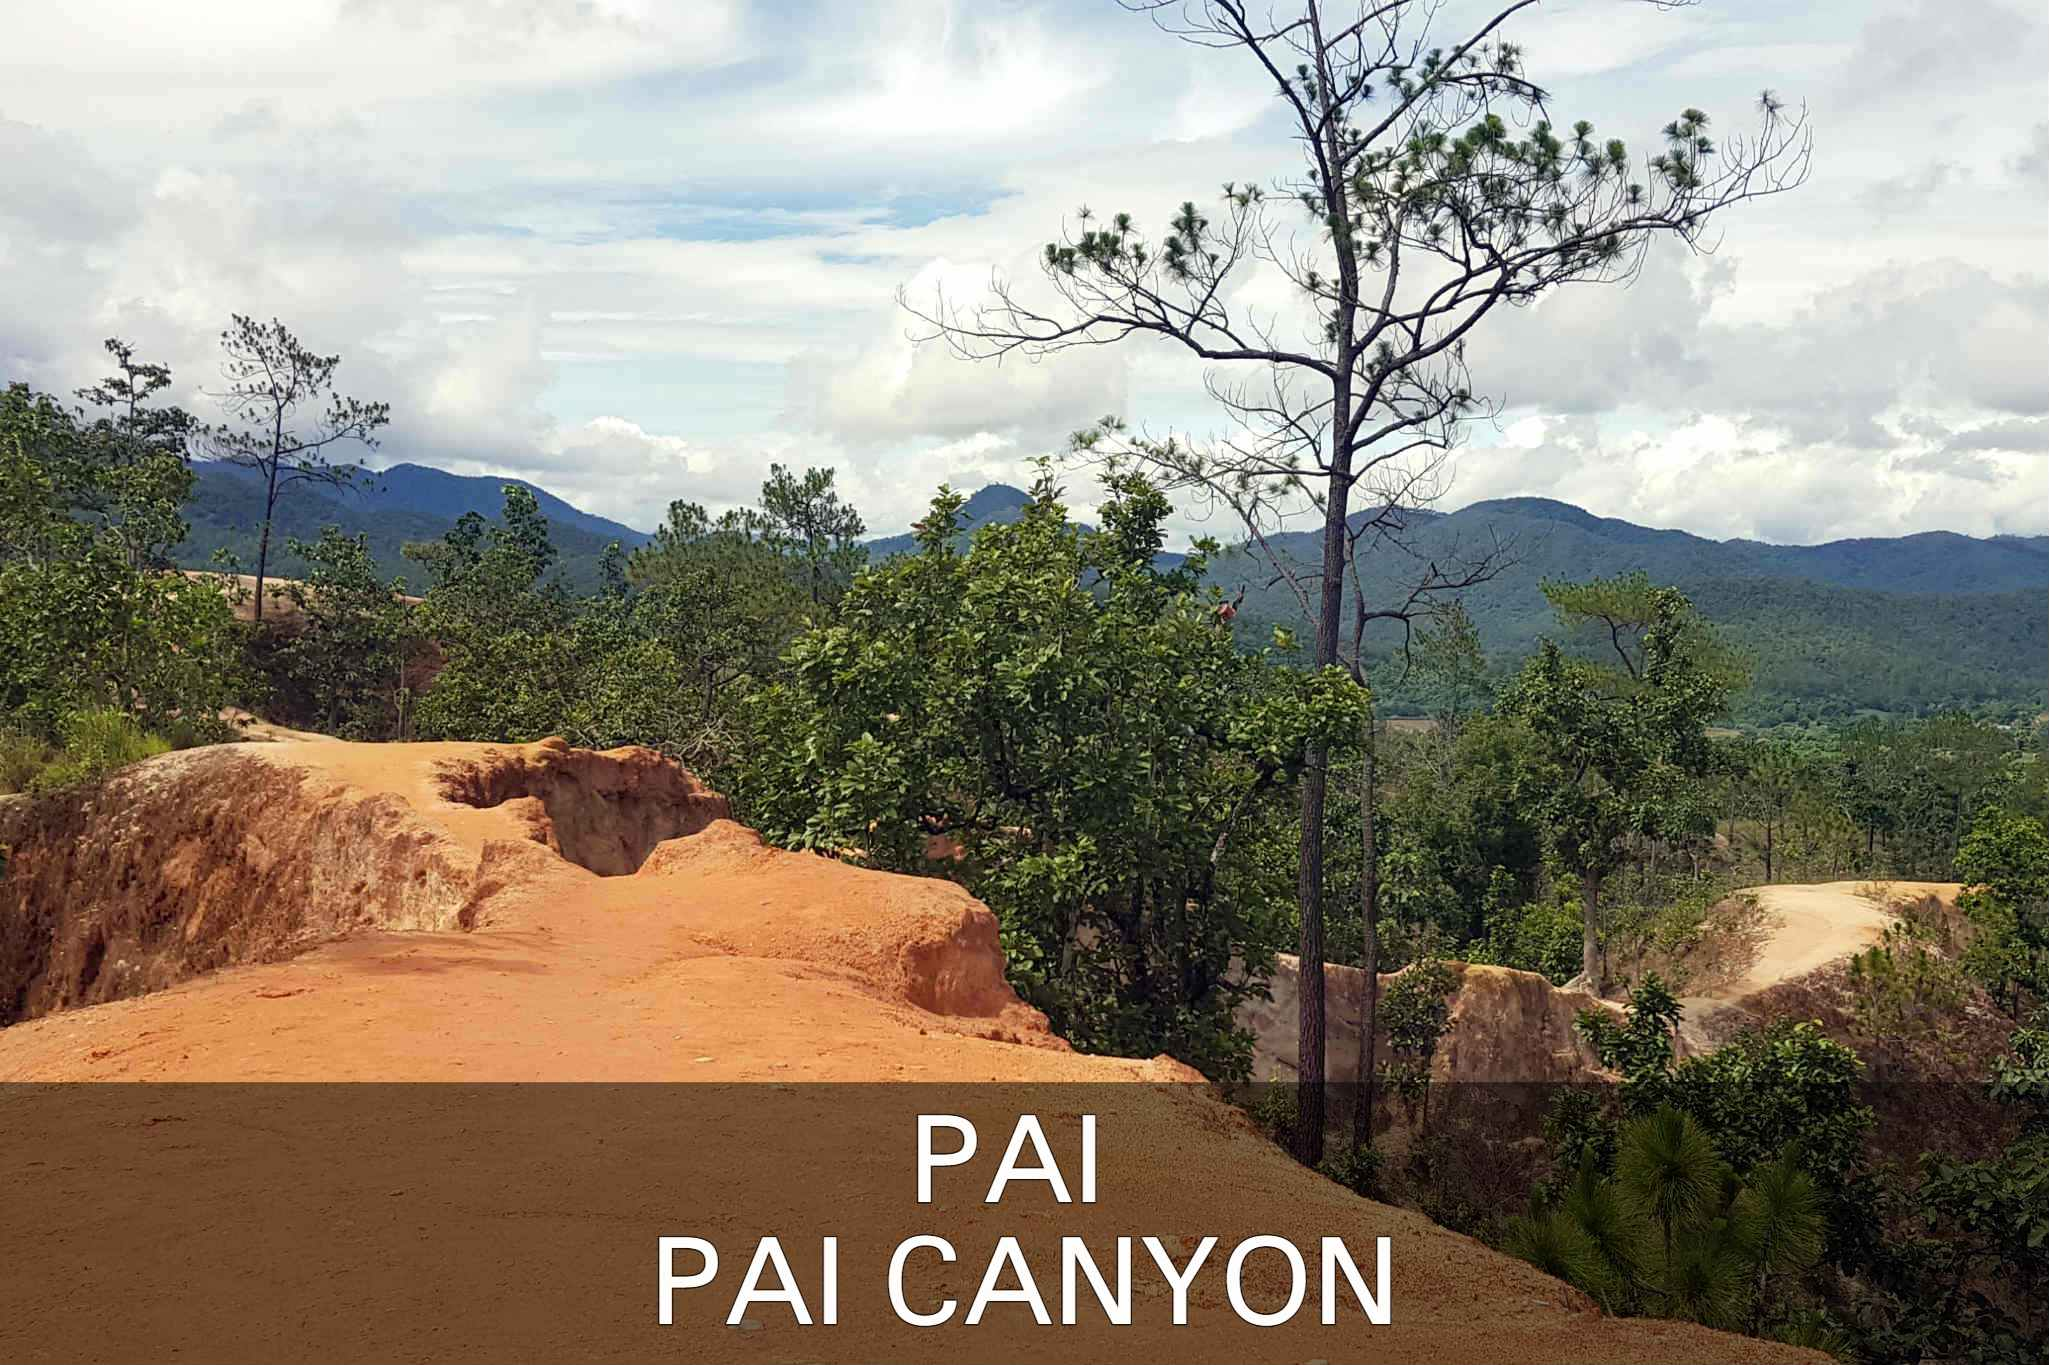 Pai Canyon In Pai, Thailand